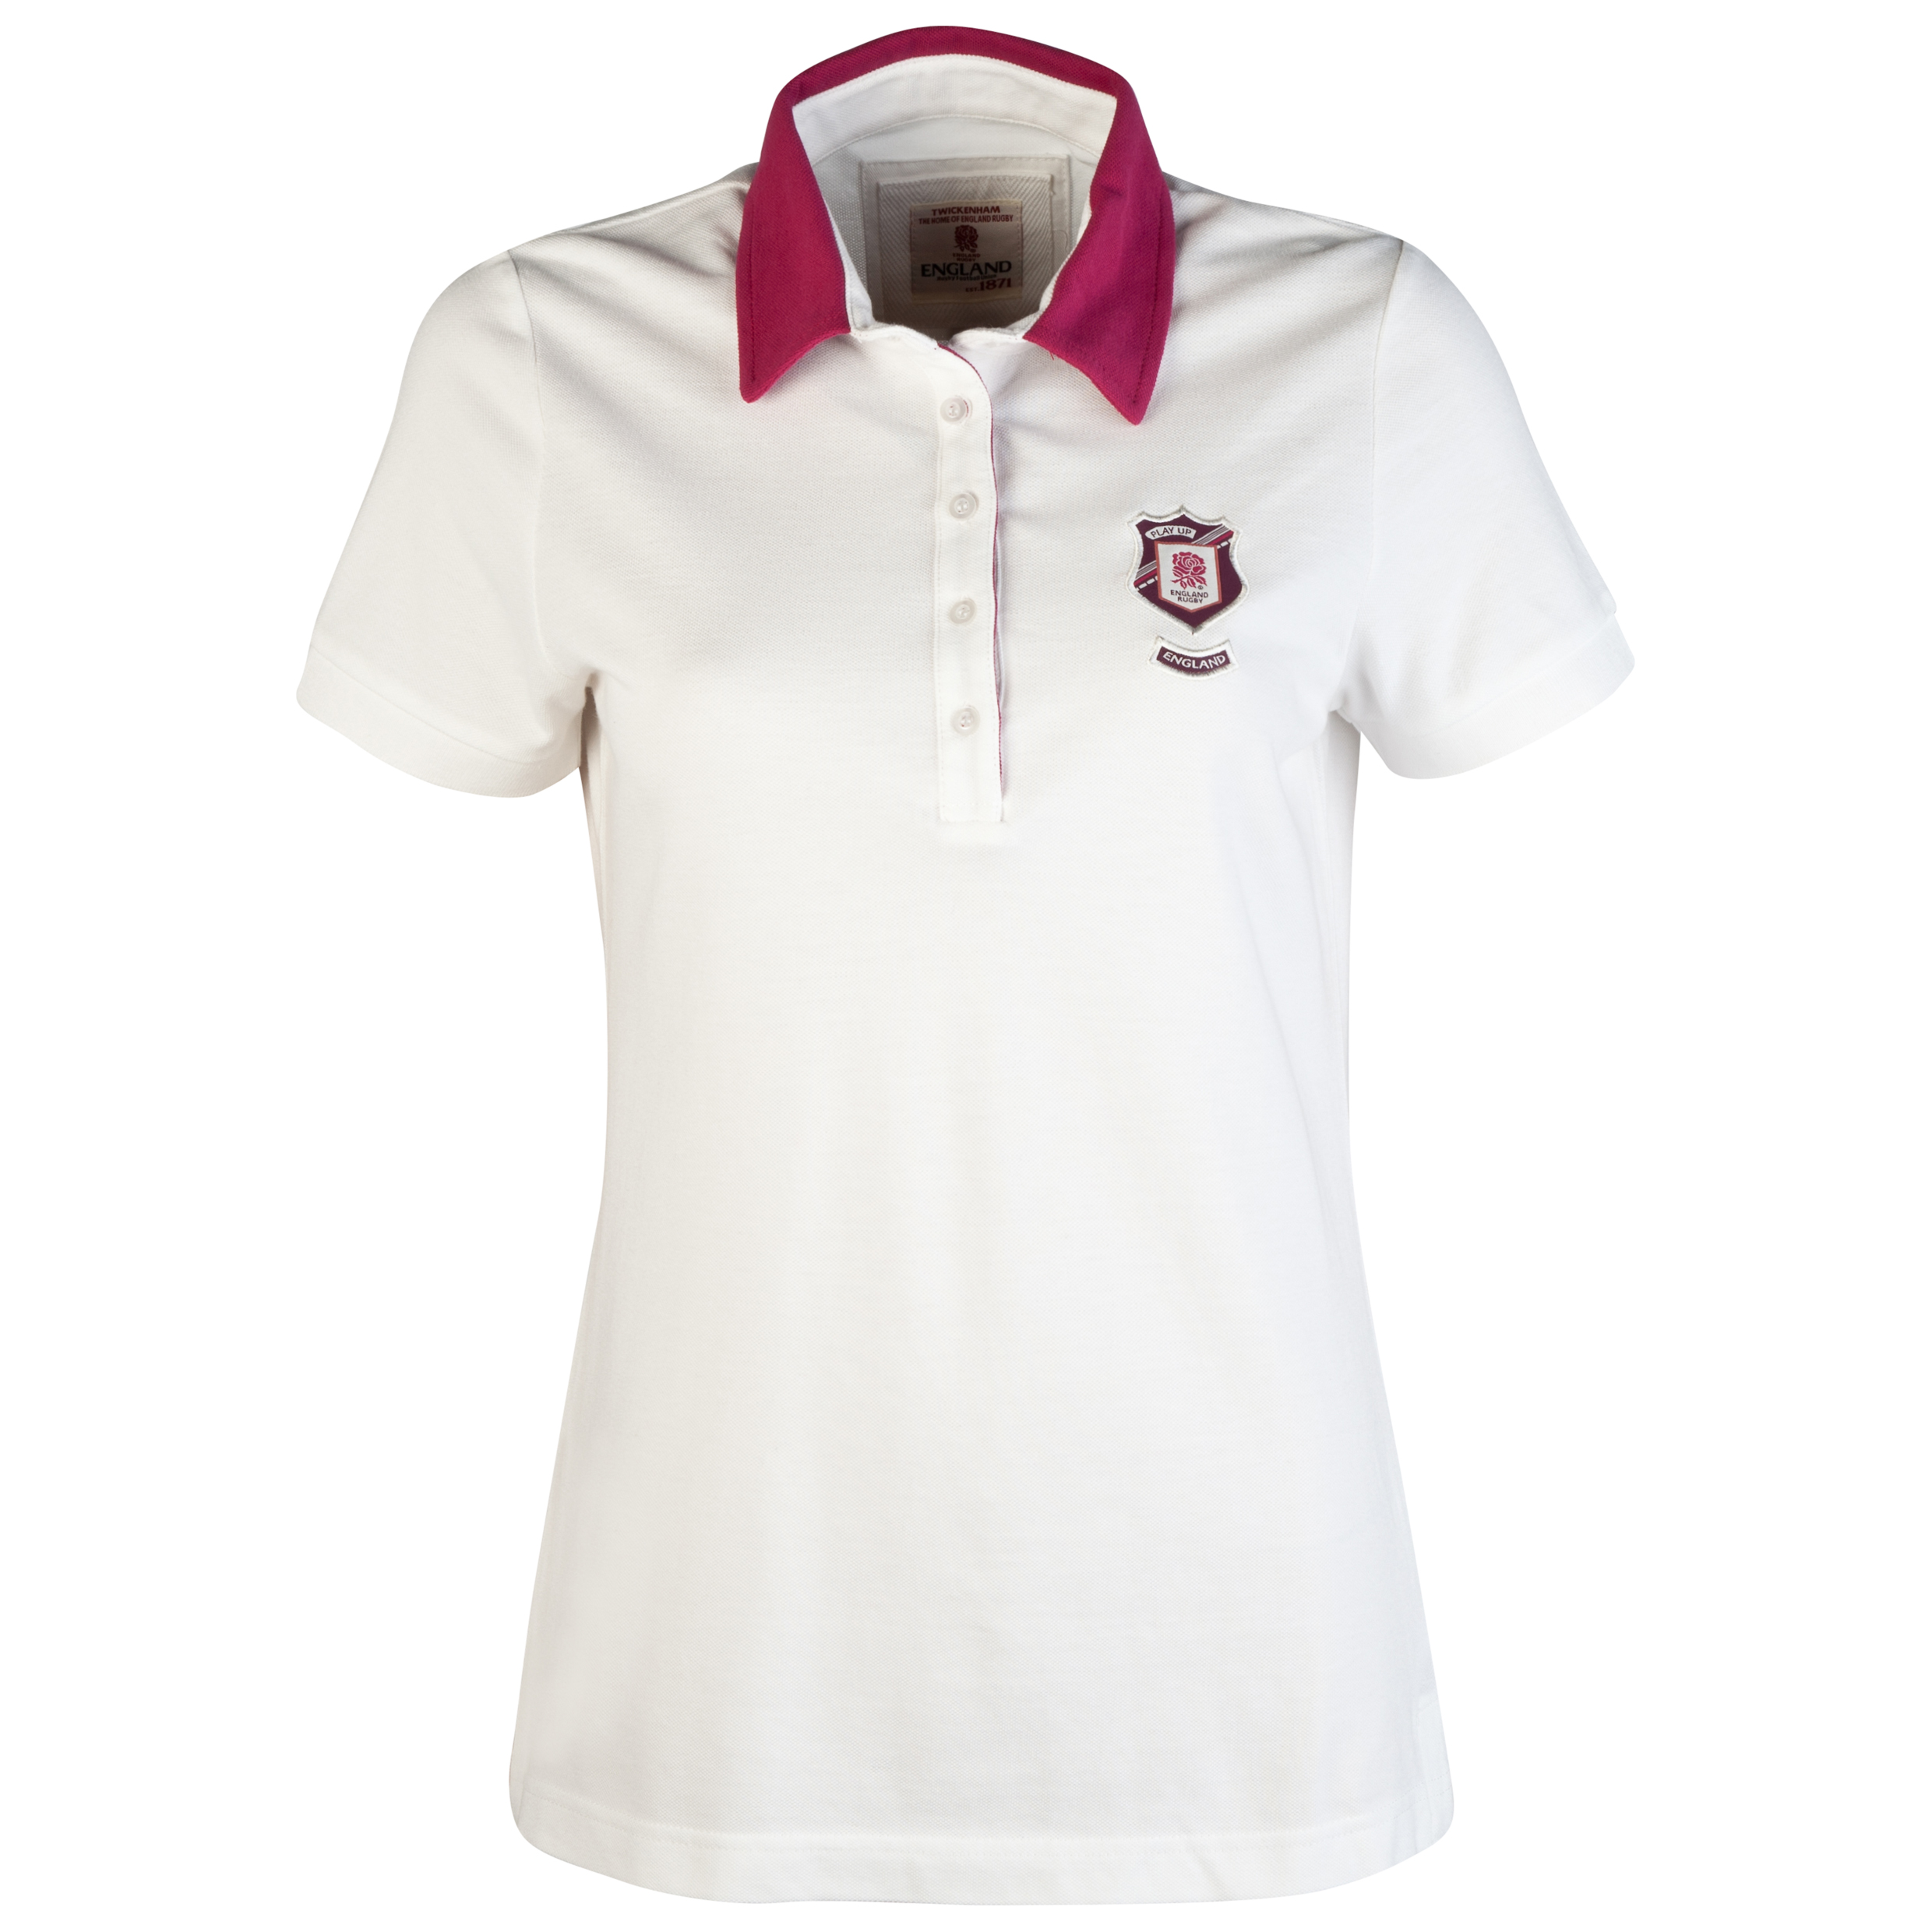 England Rugby Authentic Collection Solid Polo - Cream/Pink - Womens